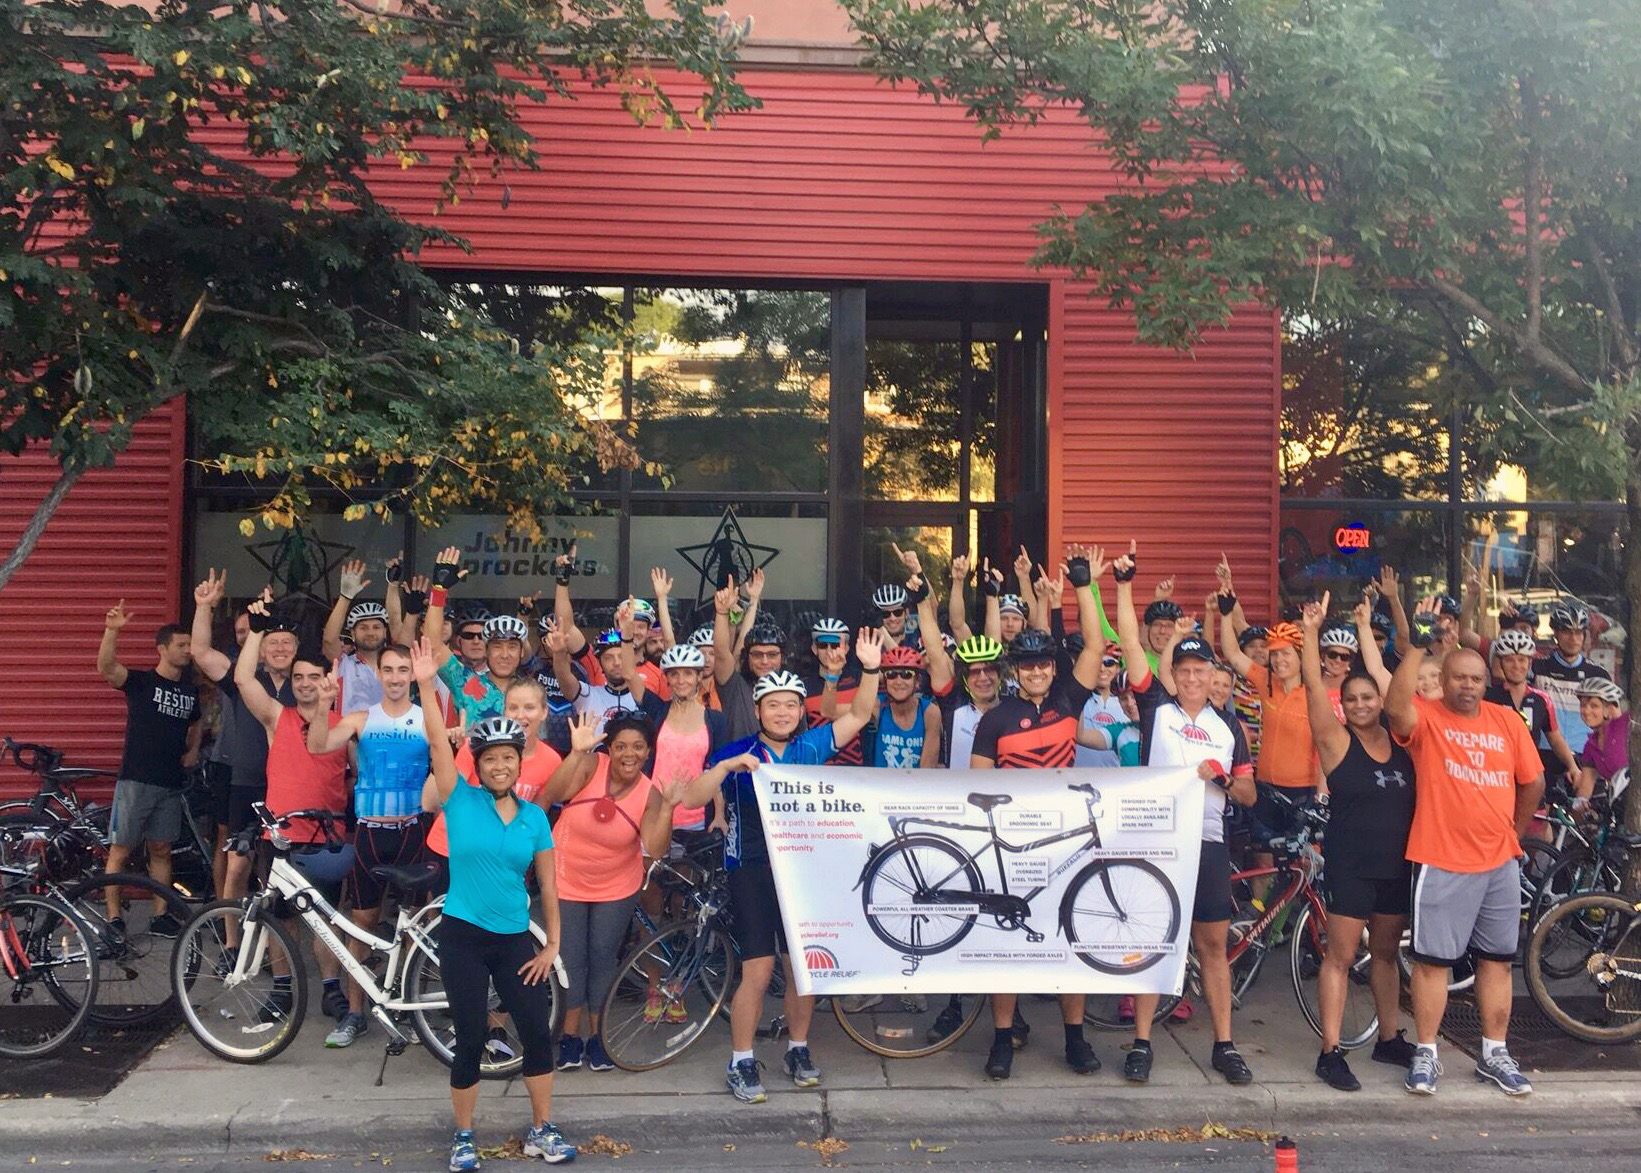 MORNING GROUP RIDEs -Johnny Sprocketsheritage Bikesadventure cycling tours - SATURDAY, SEPTEMBER 15 2018